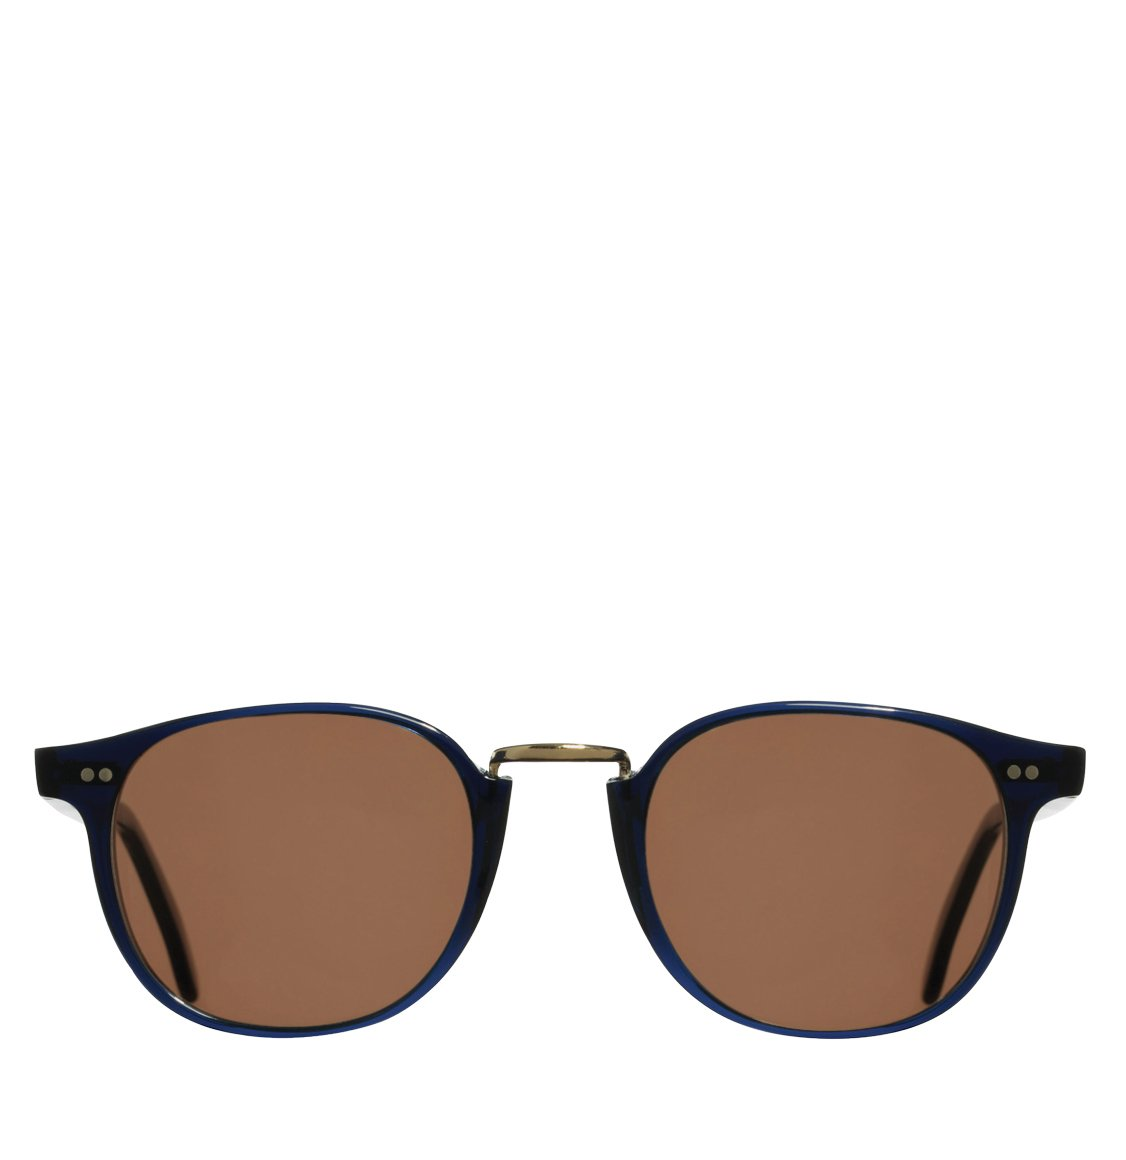 Cutler and Gross Round-Frame Classic Navy Blue Acetate Γυαλιά Ηλίου